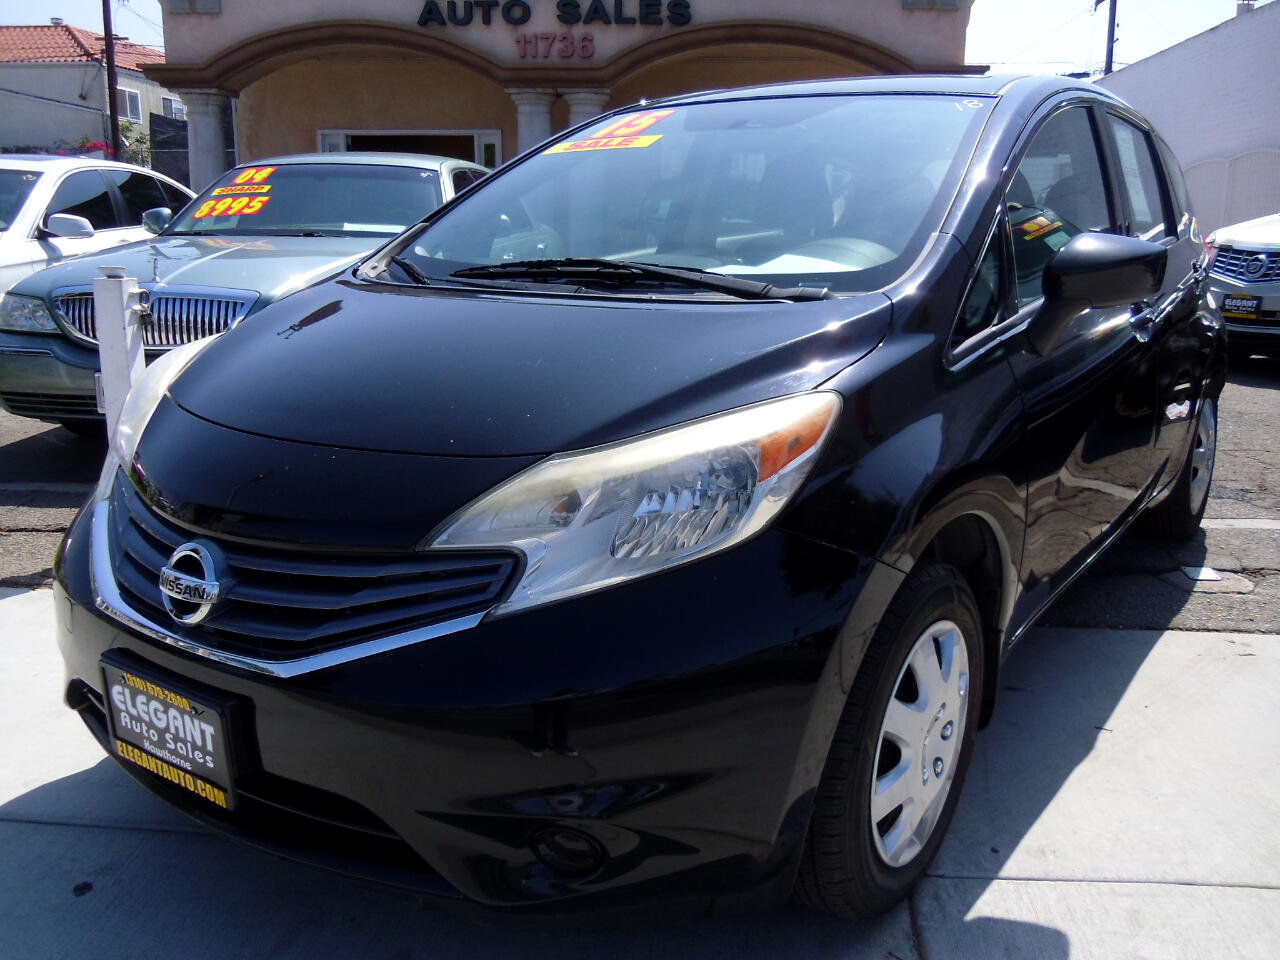 Nissan Versa Note 5dr HB Manual 1.6 S 2015